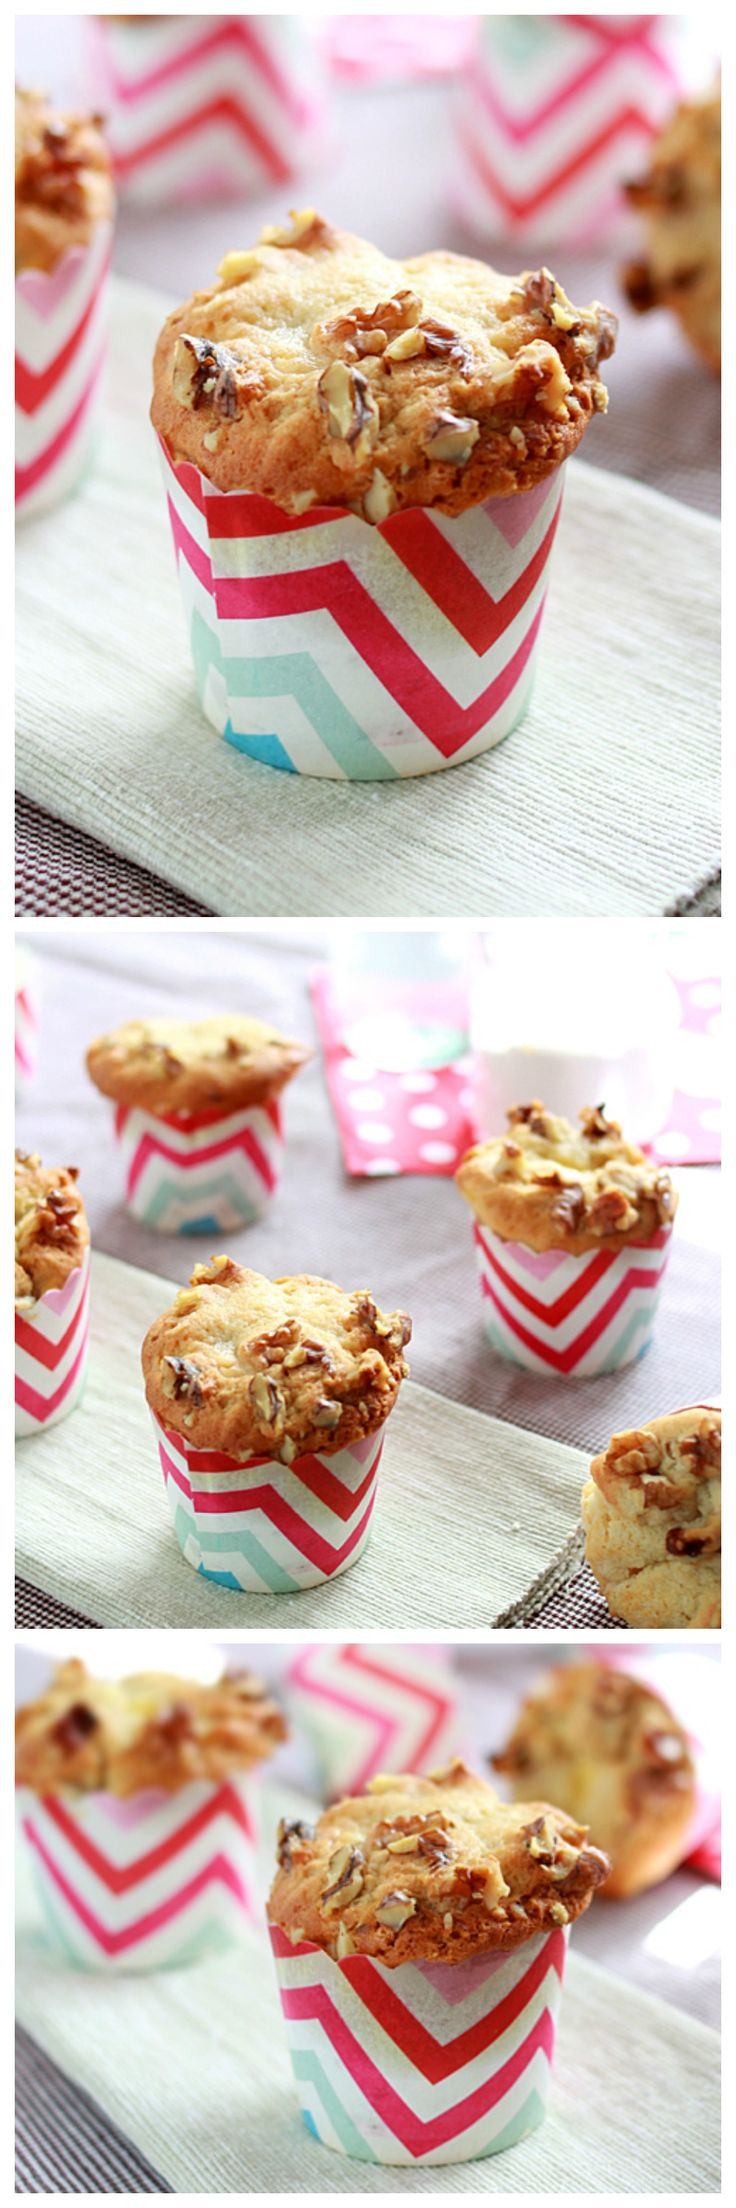 Banana Cream Cheese Muffins. The sweetest  and creamiest muffin recipe ever. It's like eating banana muffin and cheesecake together in one bite | rasamalaysia.com